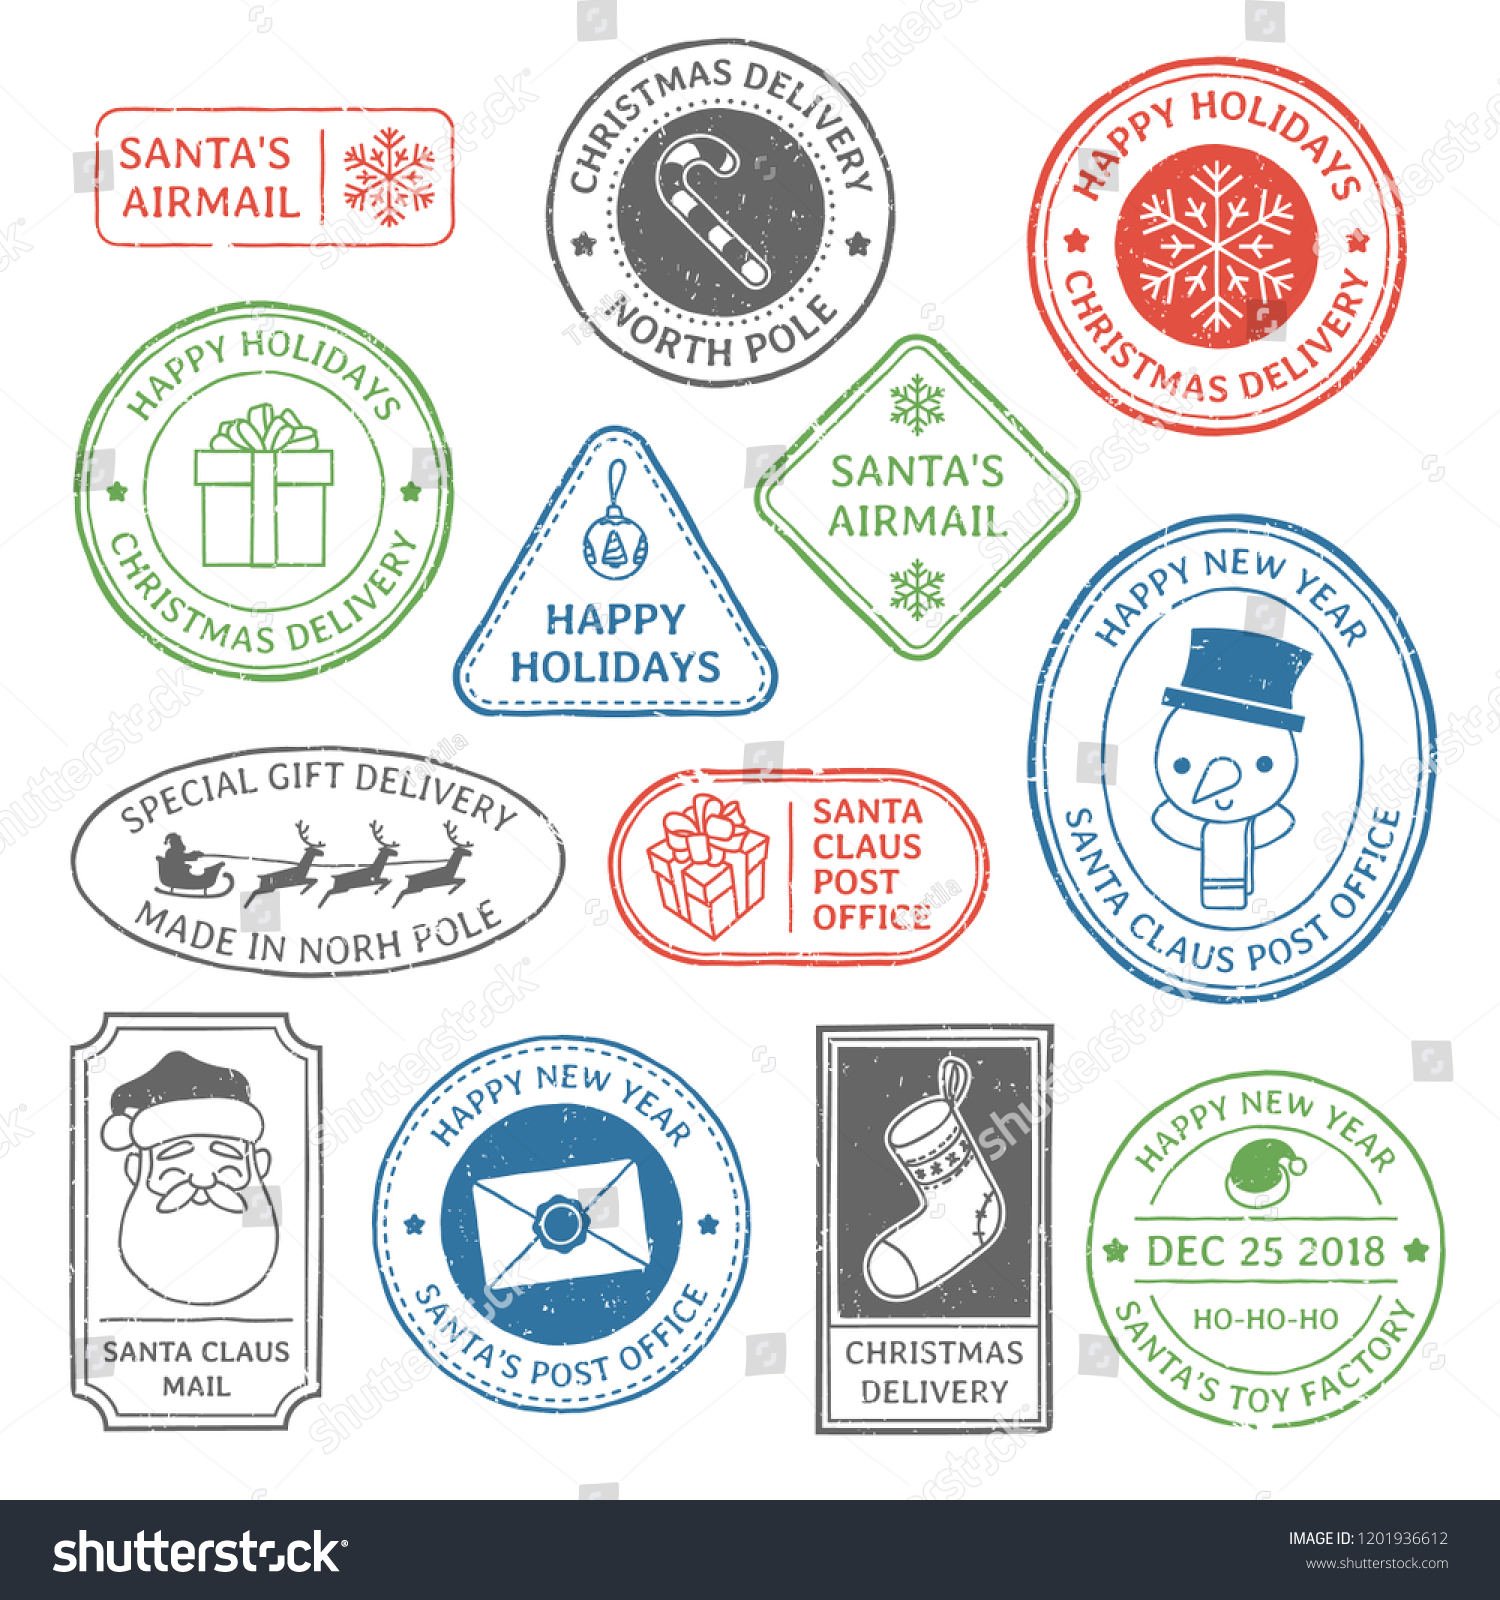 Santa Claus Post Stamp Christmas Mail Letter Stamps North Pole Postmark And Postage Mark